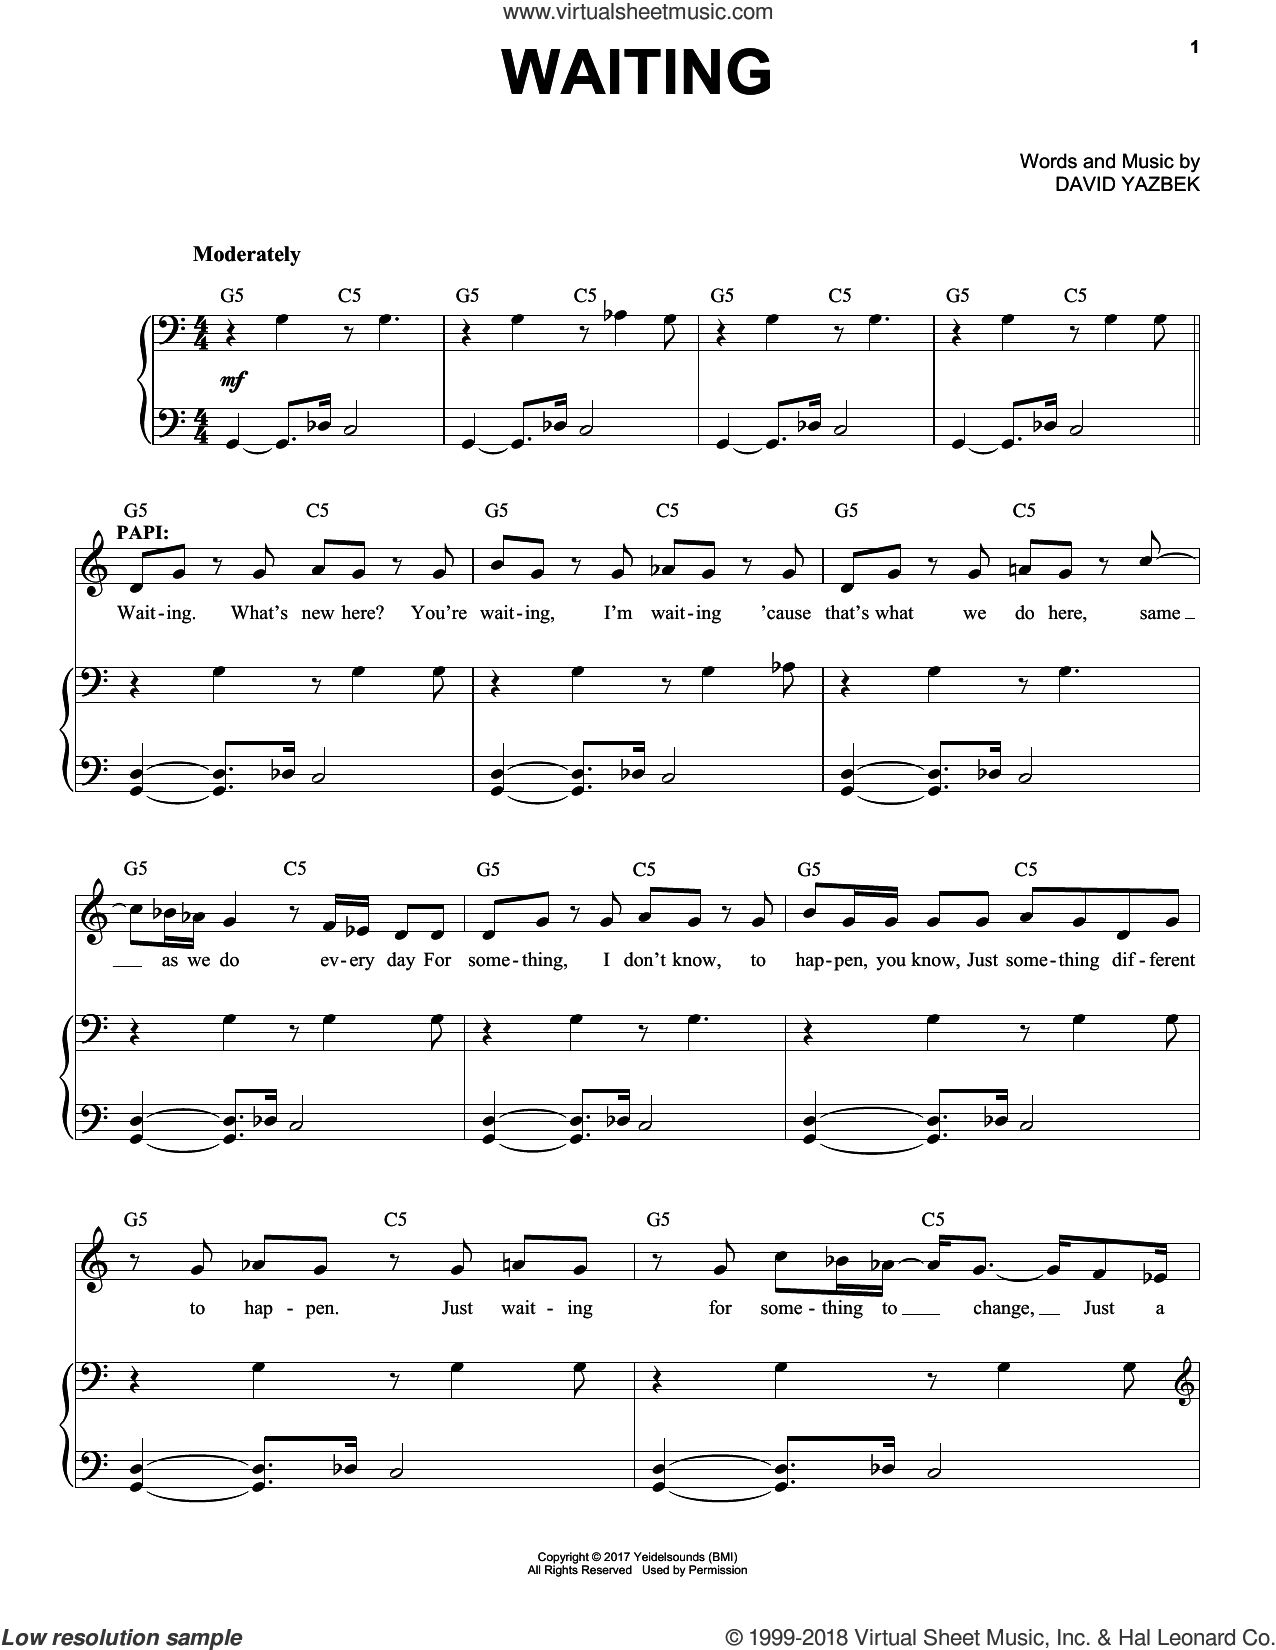 Waiting sheet music for voice and piano by David Yazbek, intermediate skill level